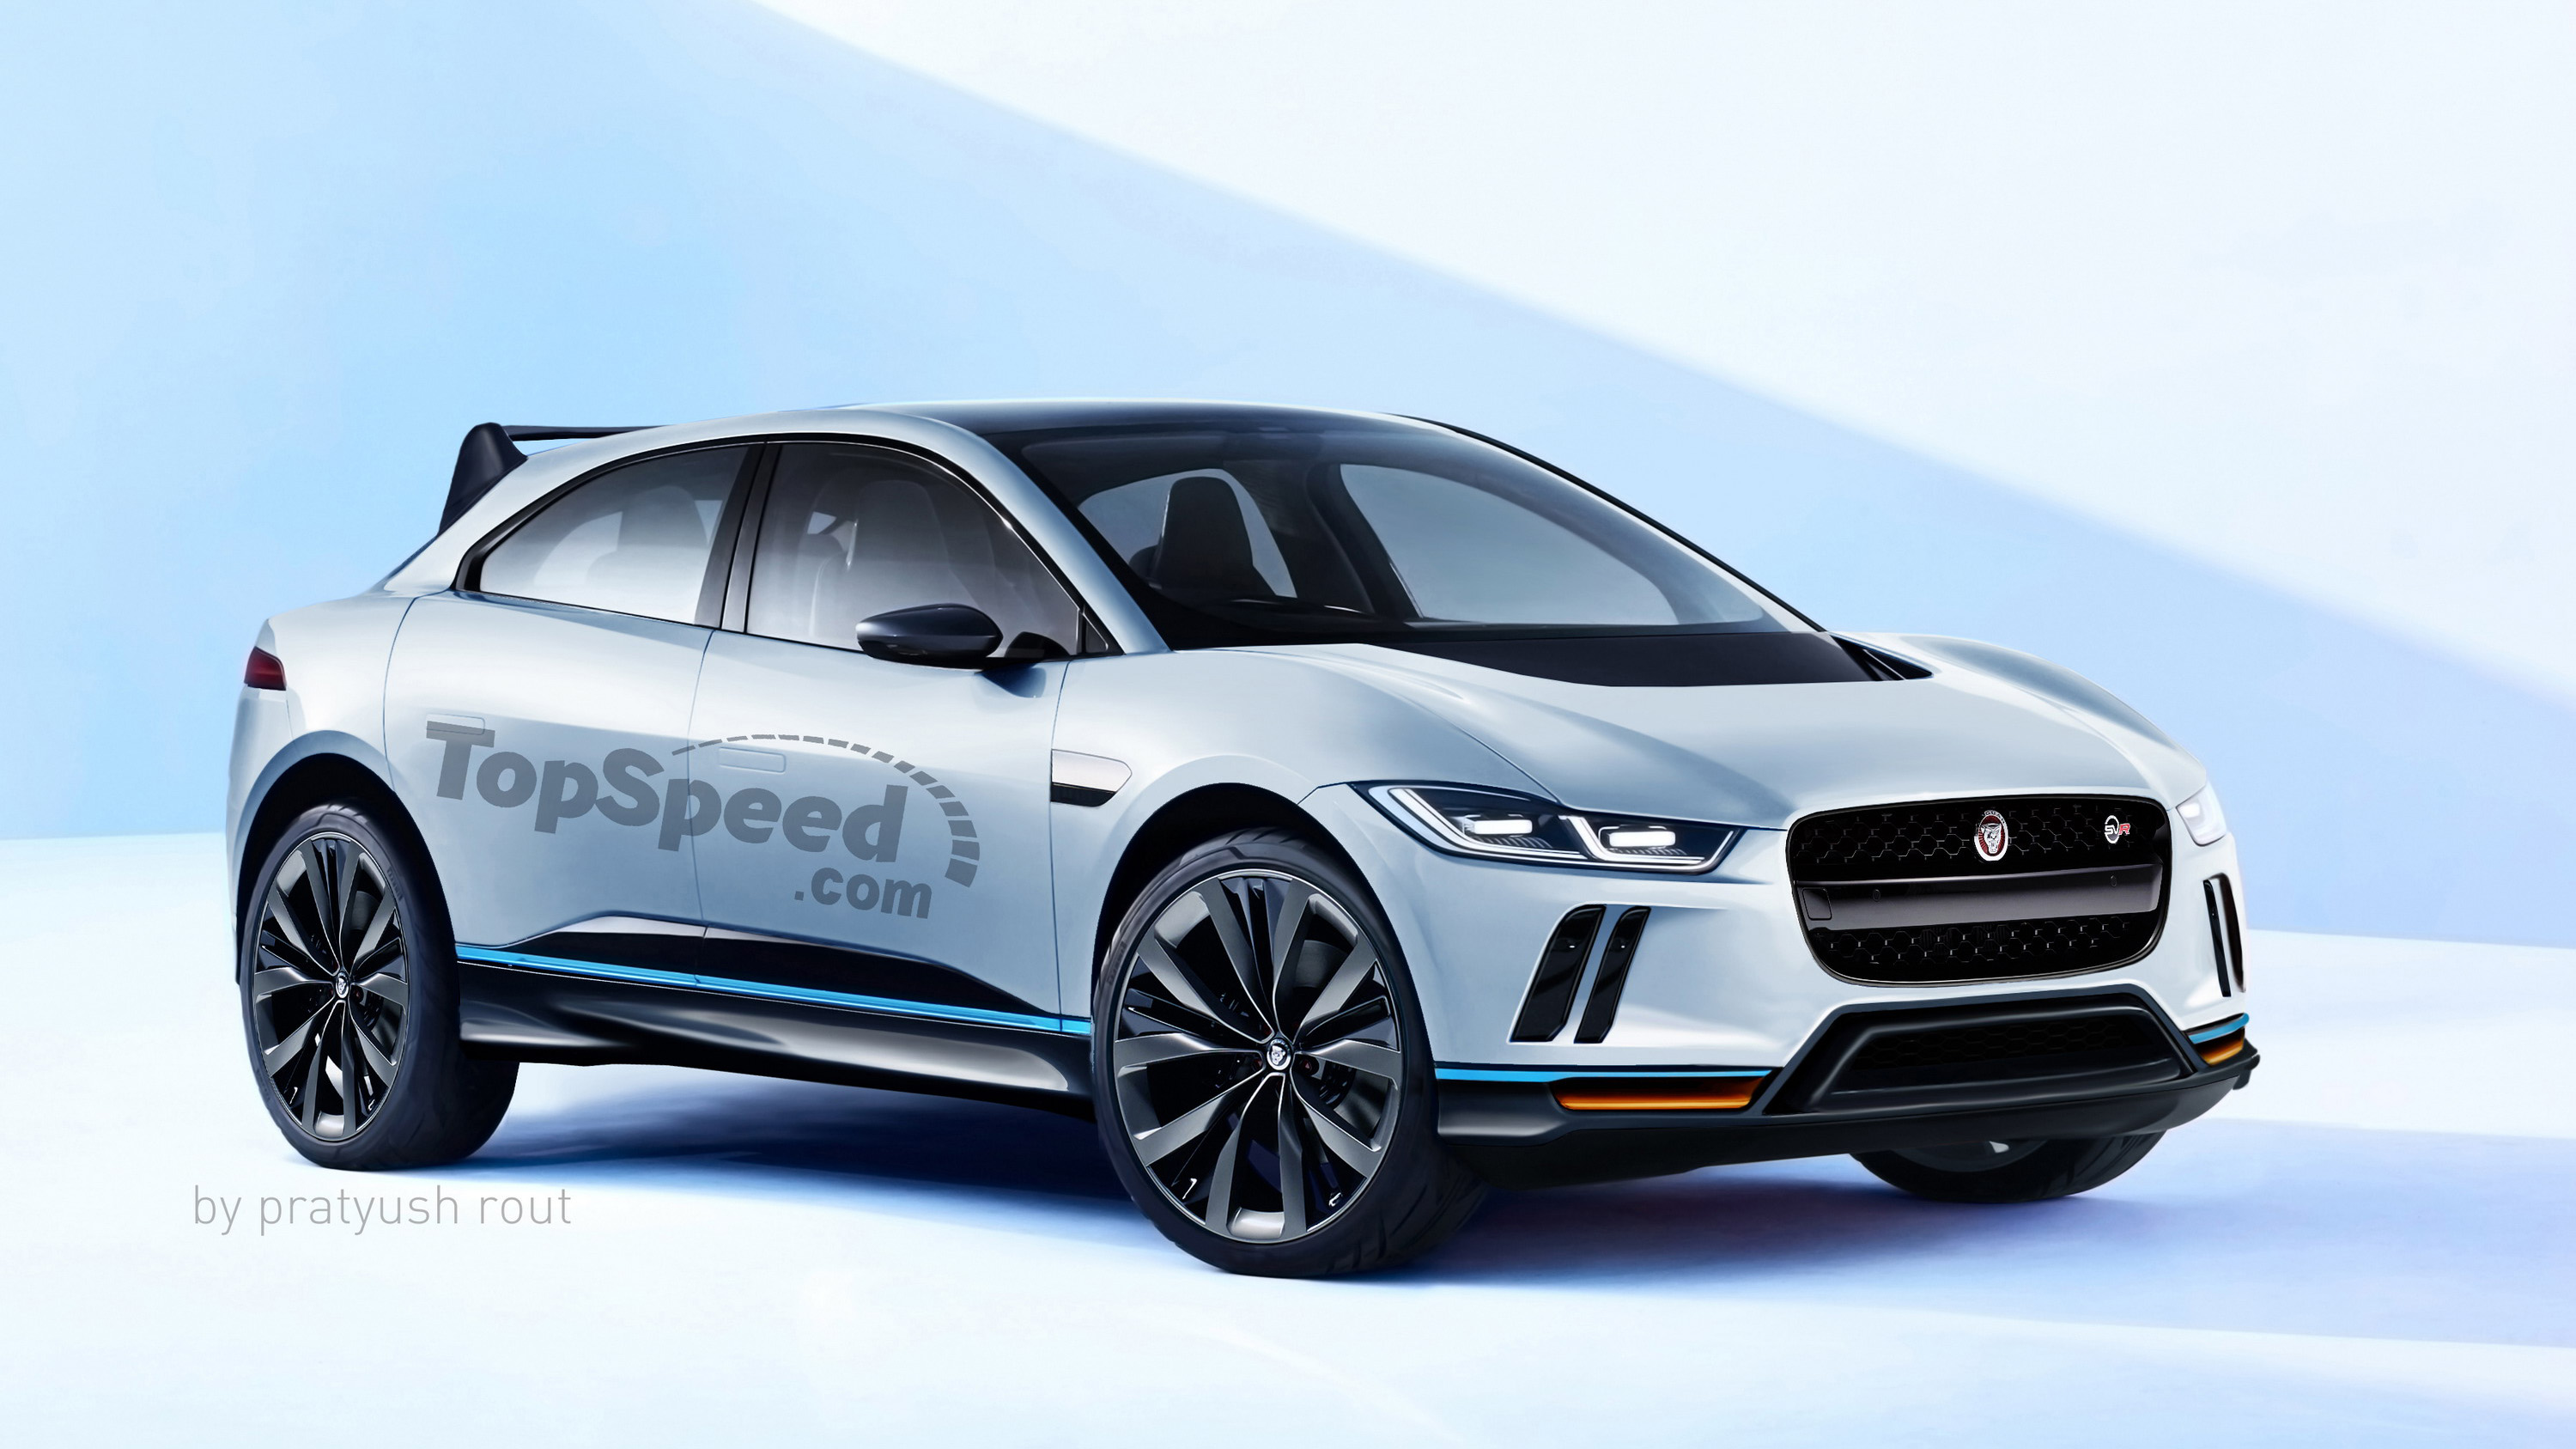 2020 jaguar f pace. Jaguar Is A Great Automaker, But It Hasn\u0027t Been Without Turbulence In Its Past. Somewhere Along The Way, Lost Spirit And Drive That Once Had, 2020 F Pace